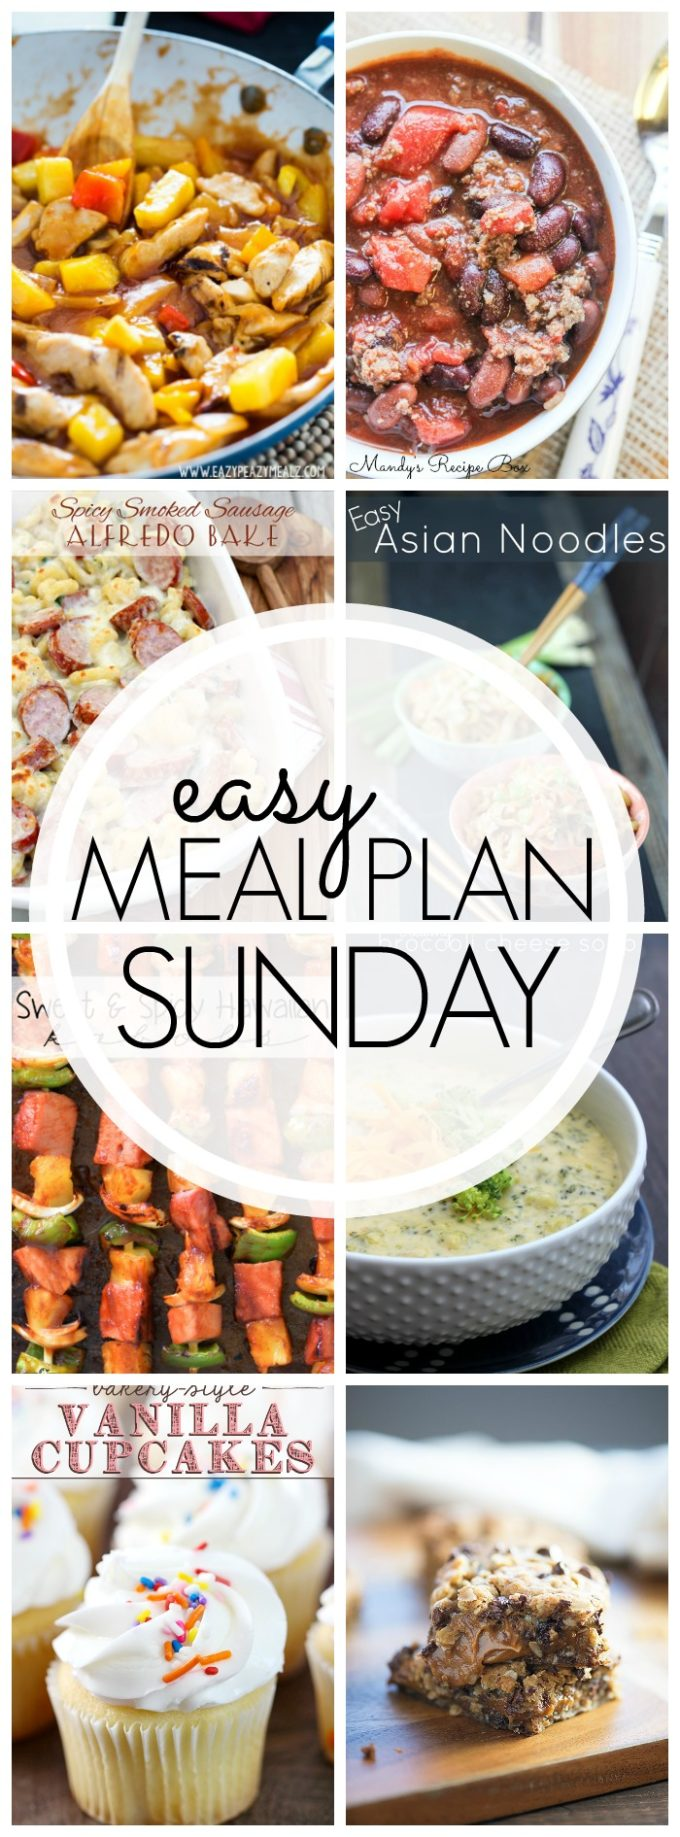 Meal plan, menu plan, menu planning, meal planning, recipes